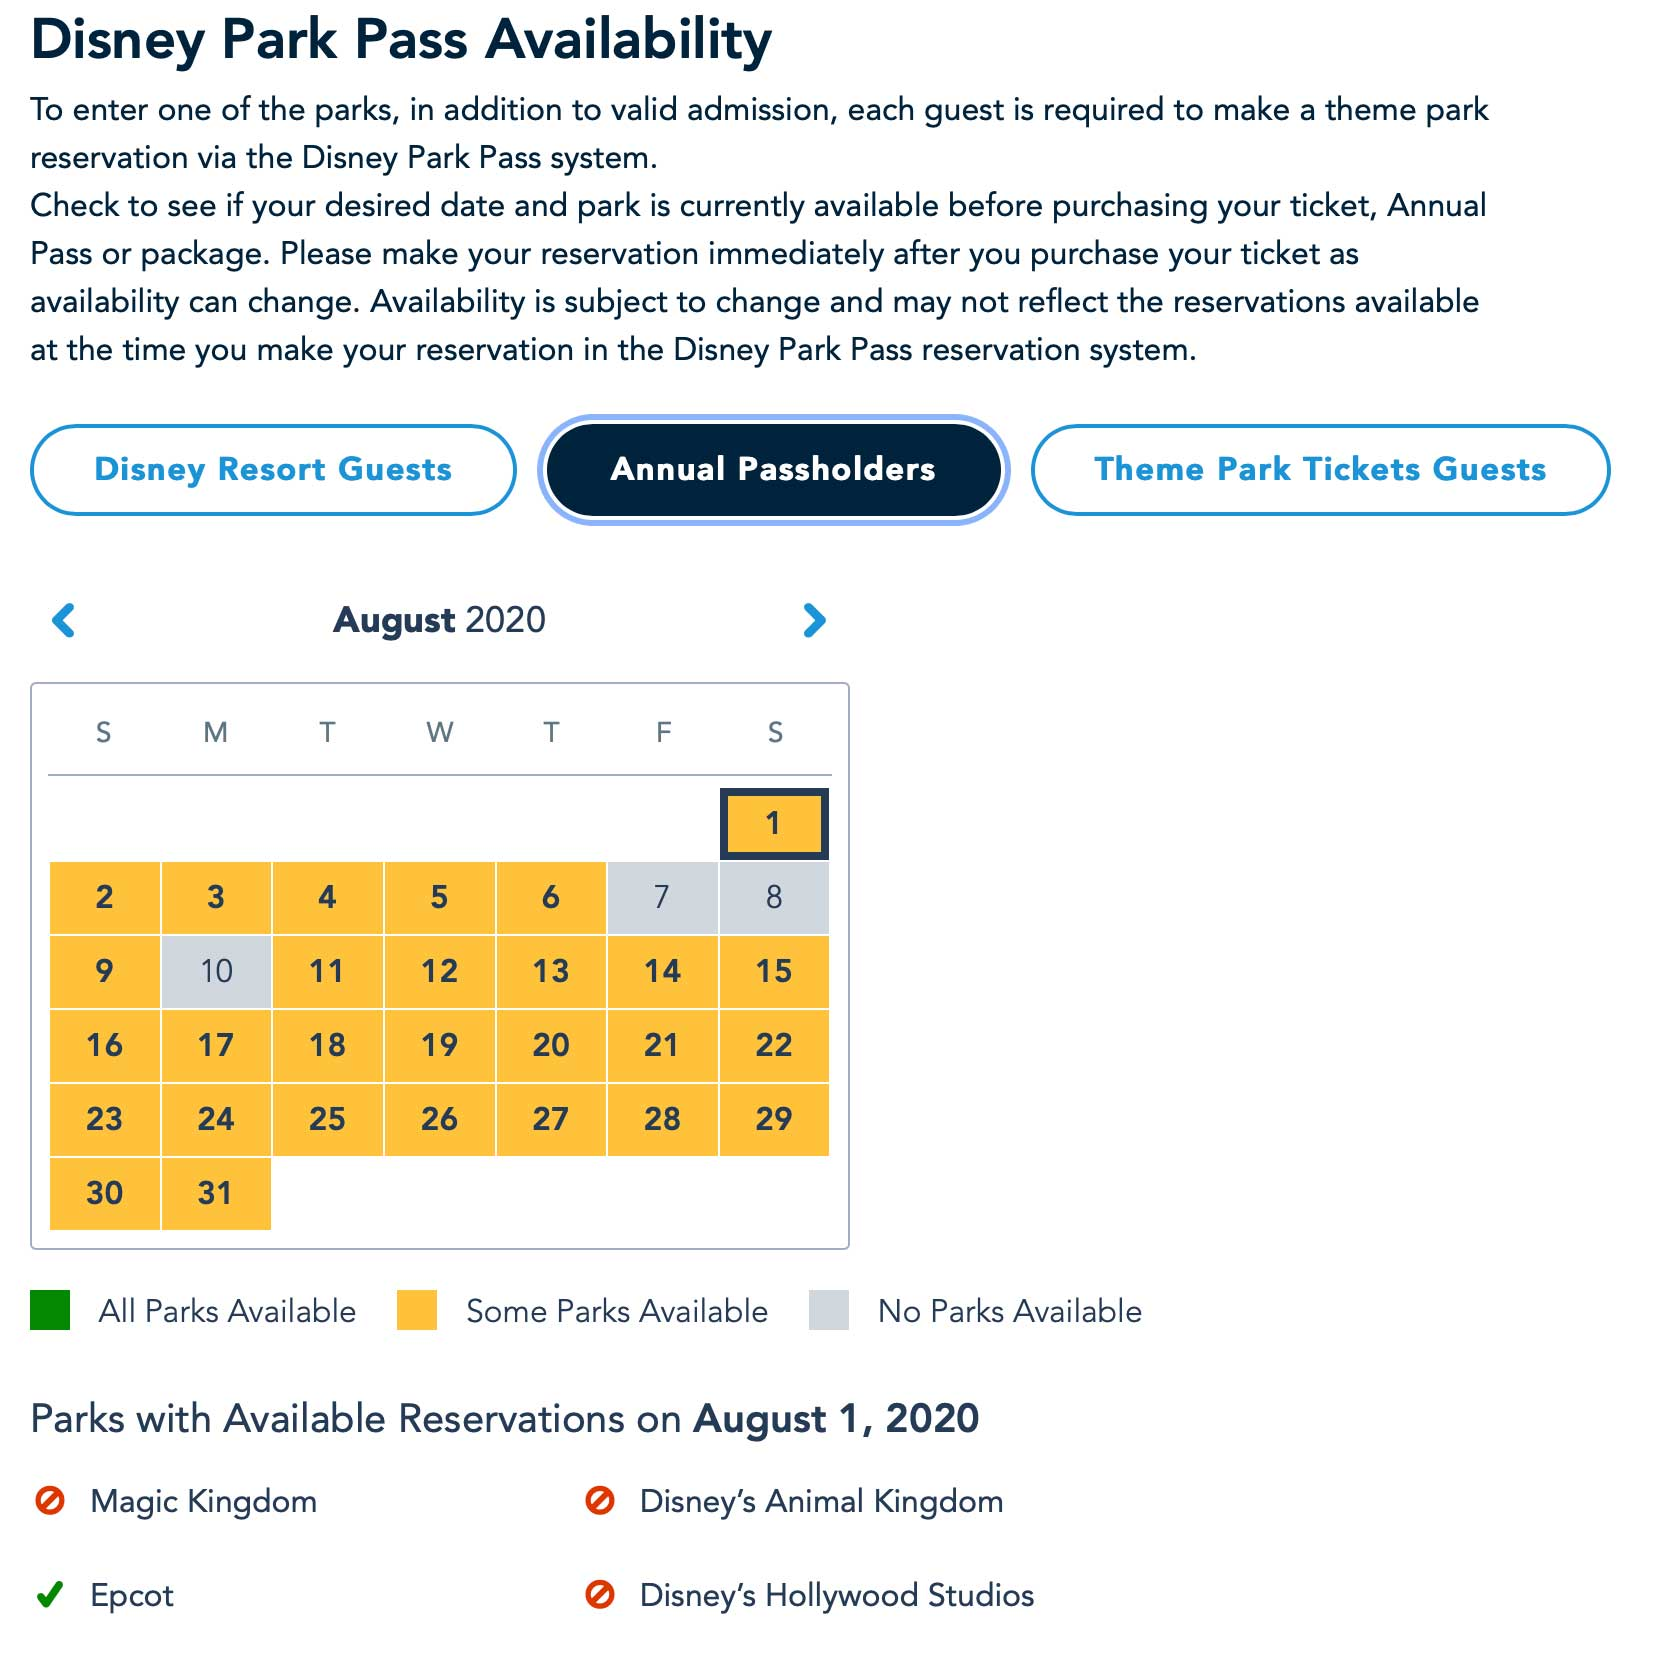 Disney Parks Pass availability for Annual Passholders